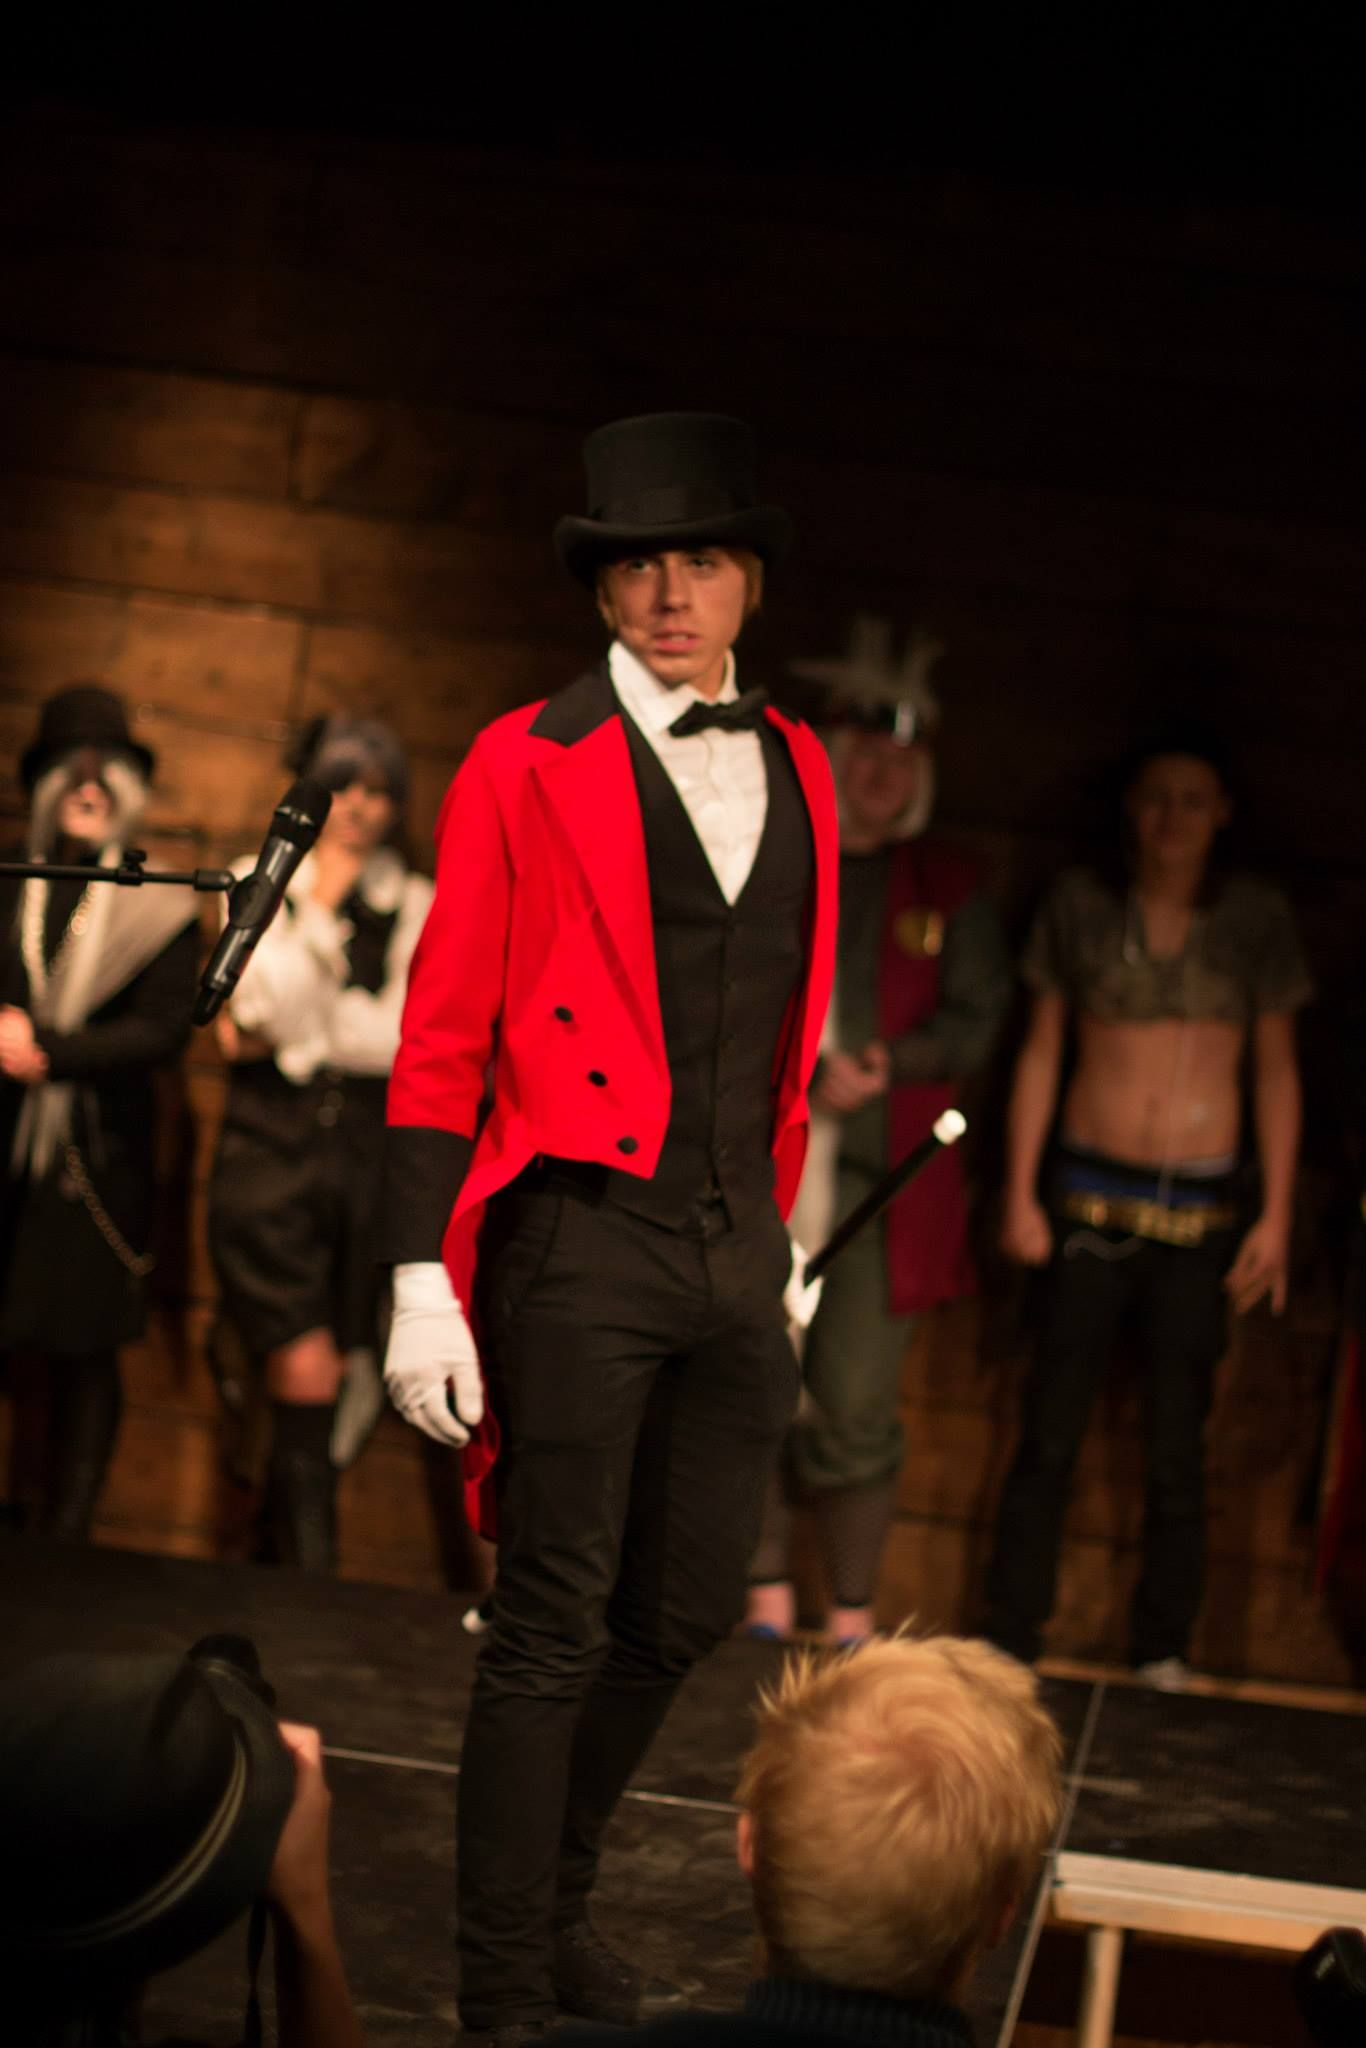 d23e590b Brendon Urie cosplay - I Write Sins Not Tragedies - #Panic! at the Disco